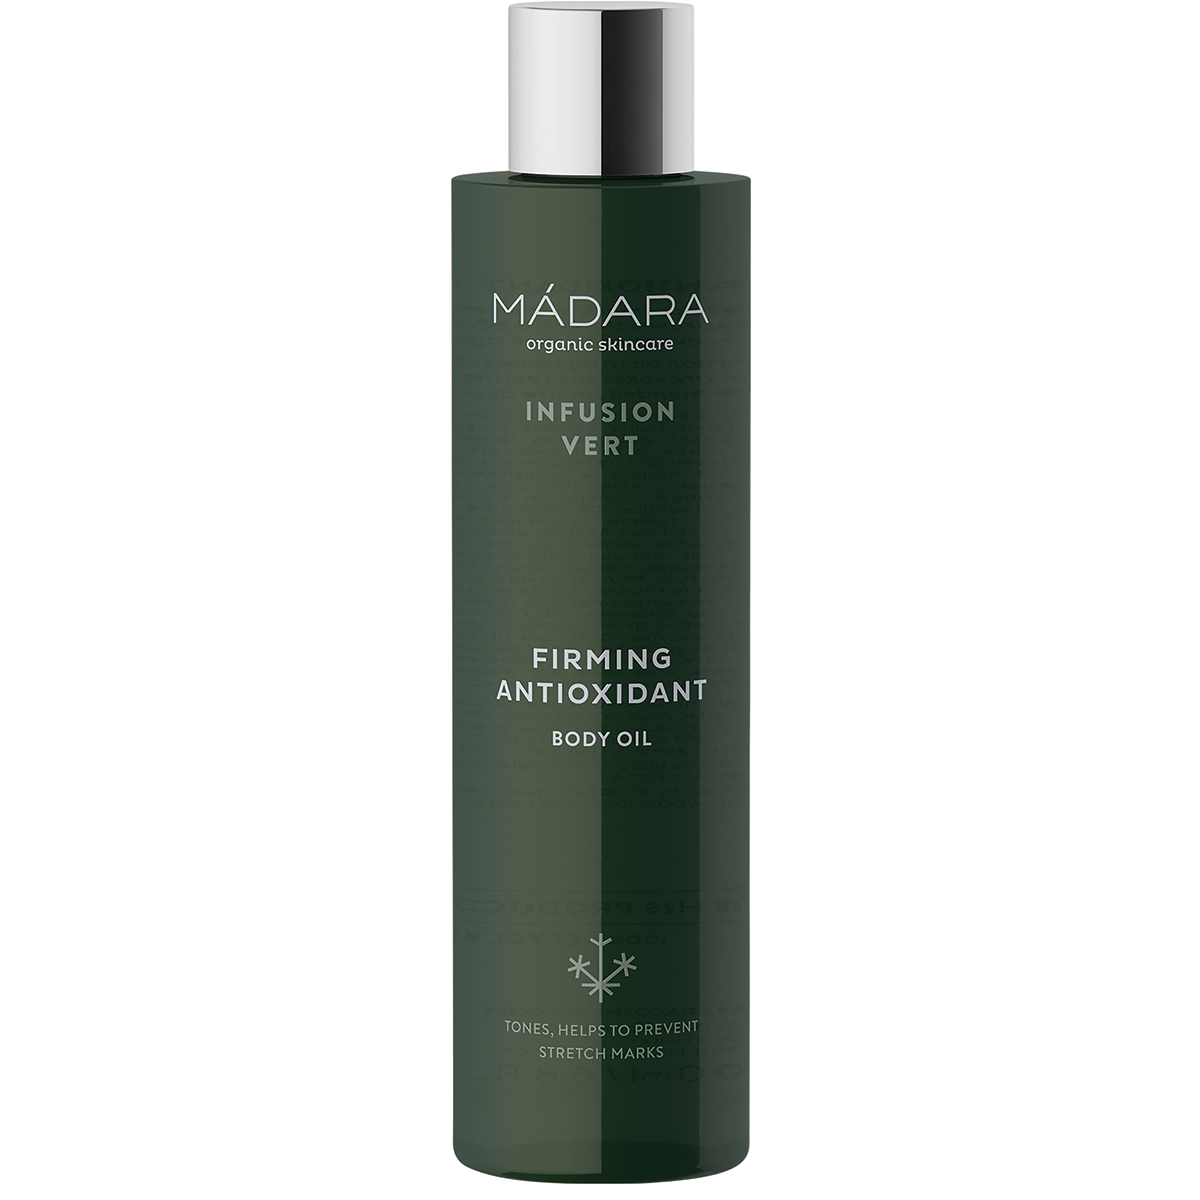 MÁDARA ecocosmetics Infusion Vert Firming Antioxidant Body Oil